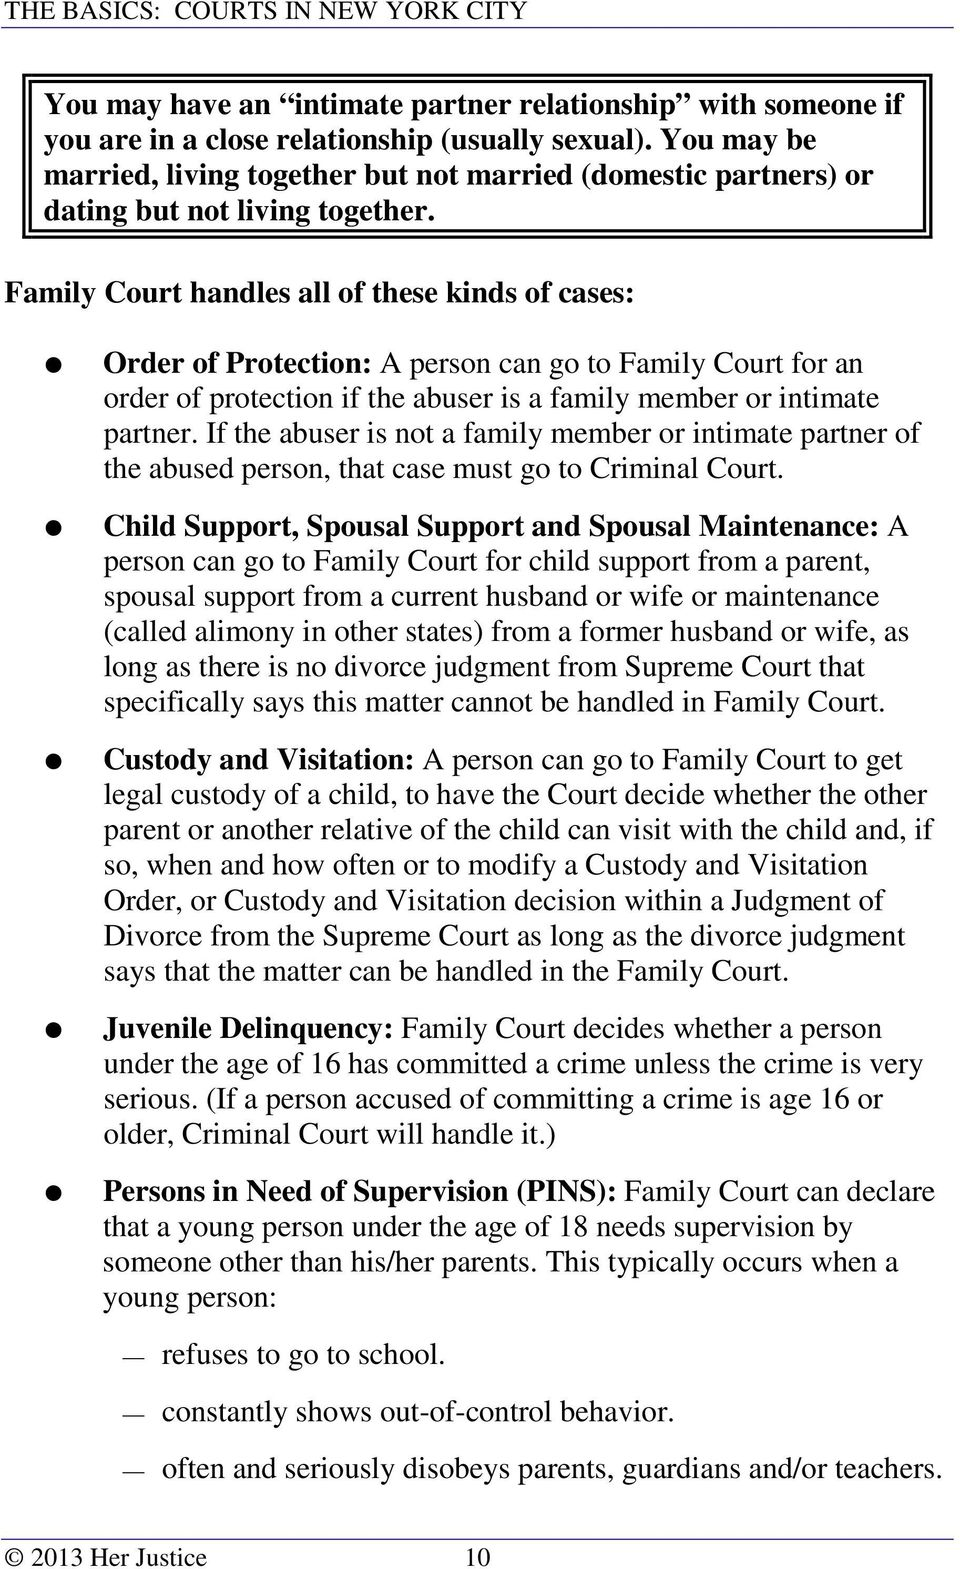 Family Court handles all of these kinds of cases: Order of Protection: A person can go to Family Court for an order of protection if the abuser is a family member or intimate partner.